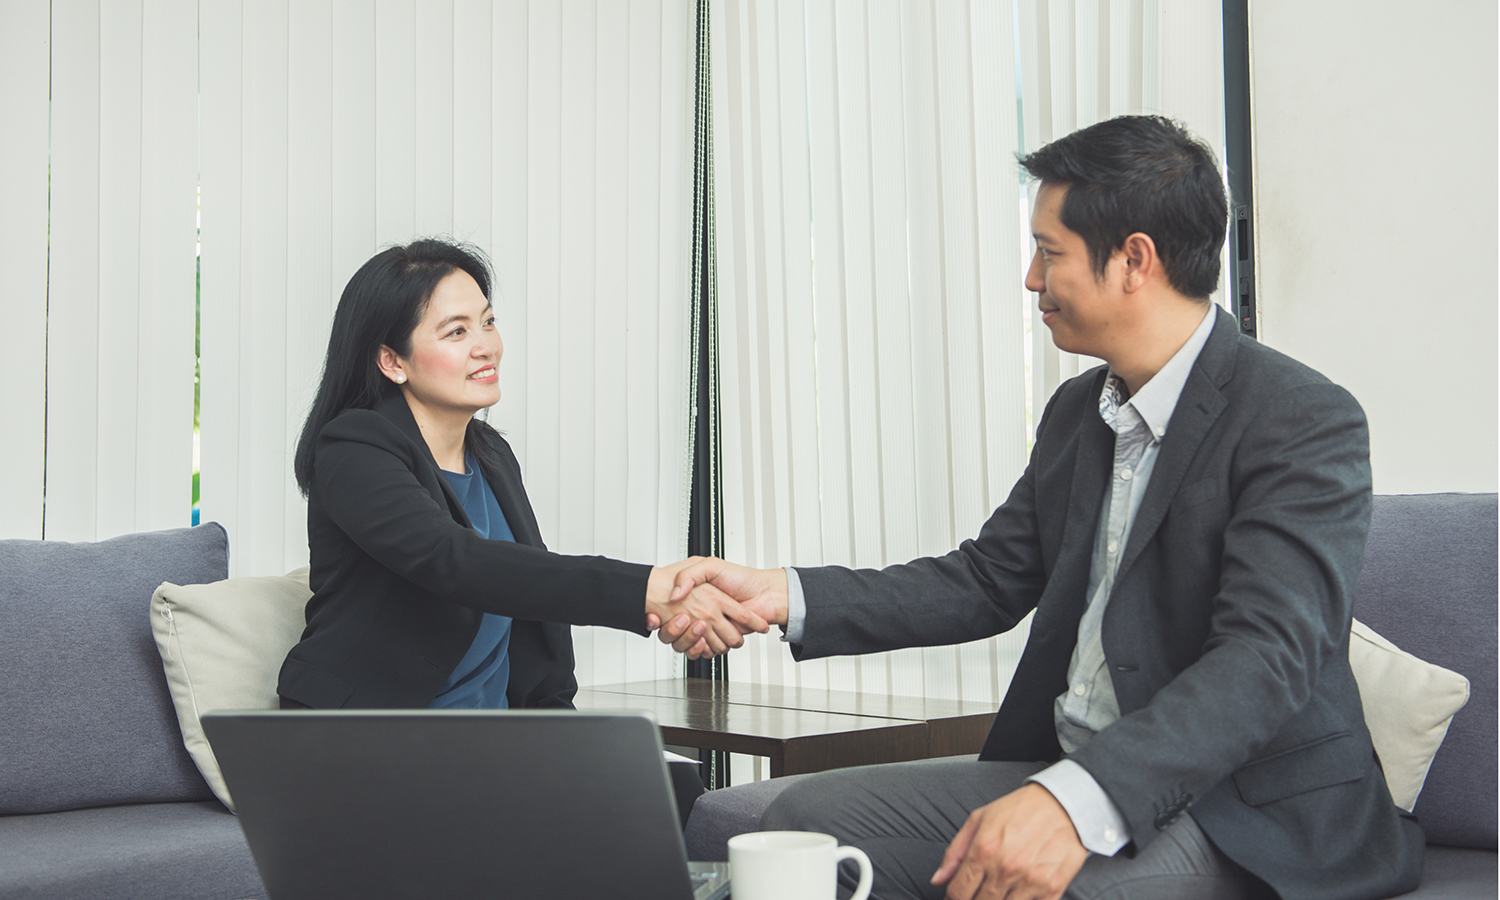 real estate agents negotiating the sale of a house